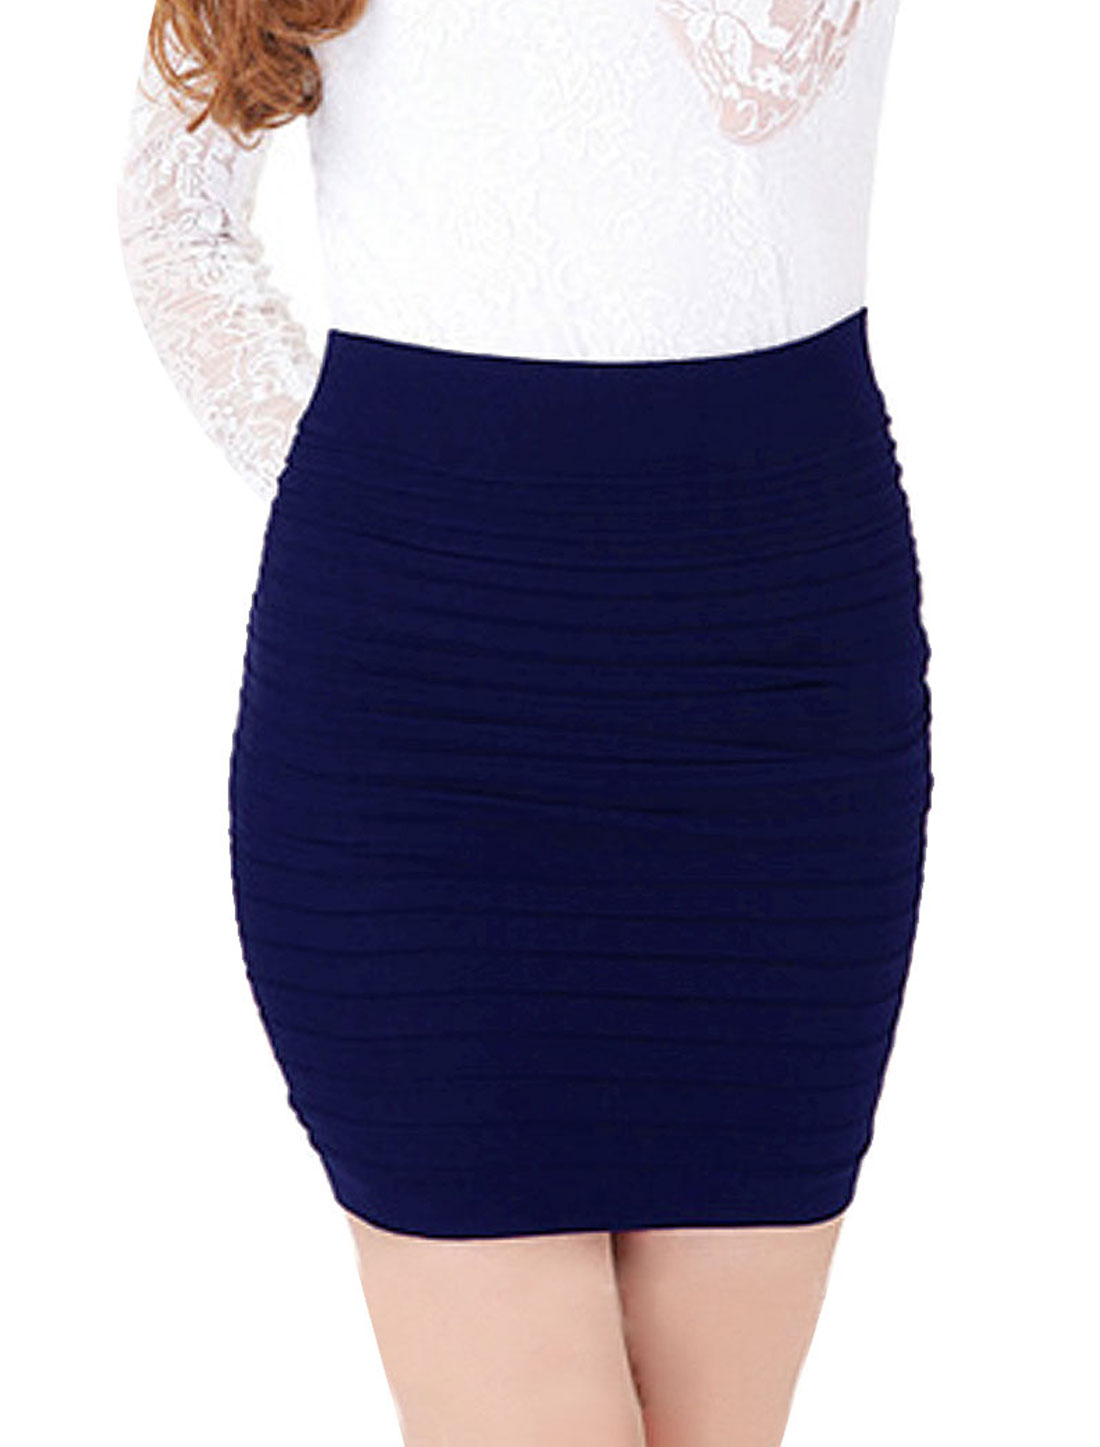 Ladies Pure Dark Blue Elastic Waist Hip Tight Mini Skirt XS